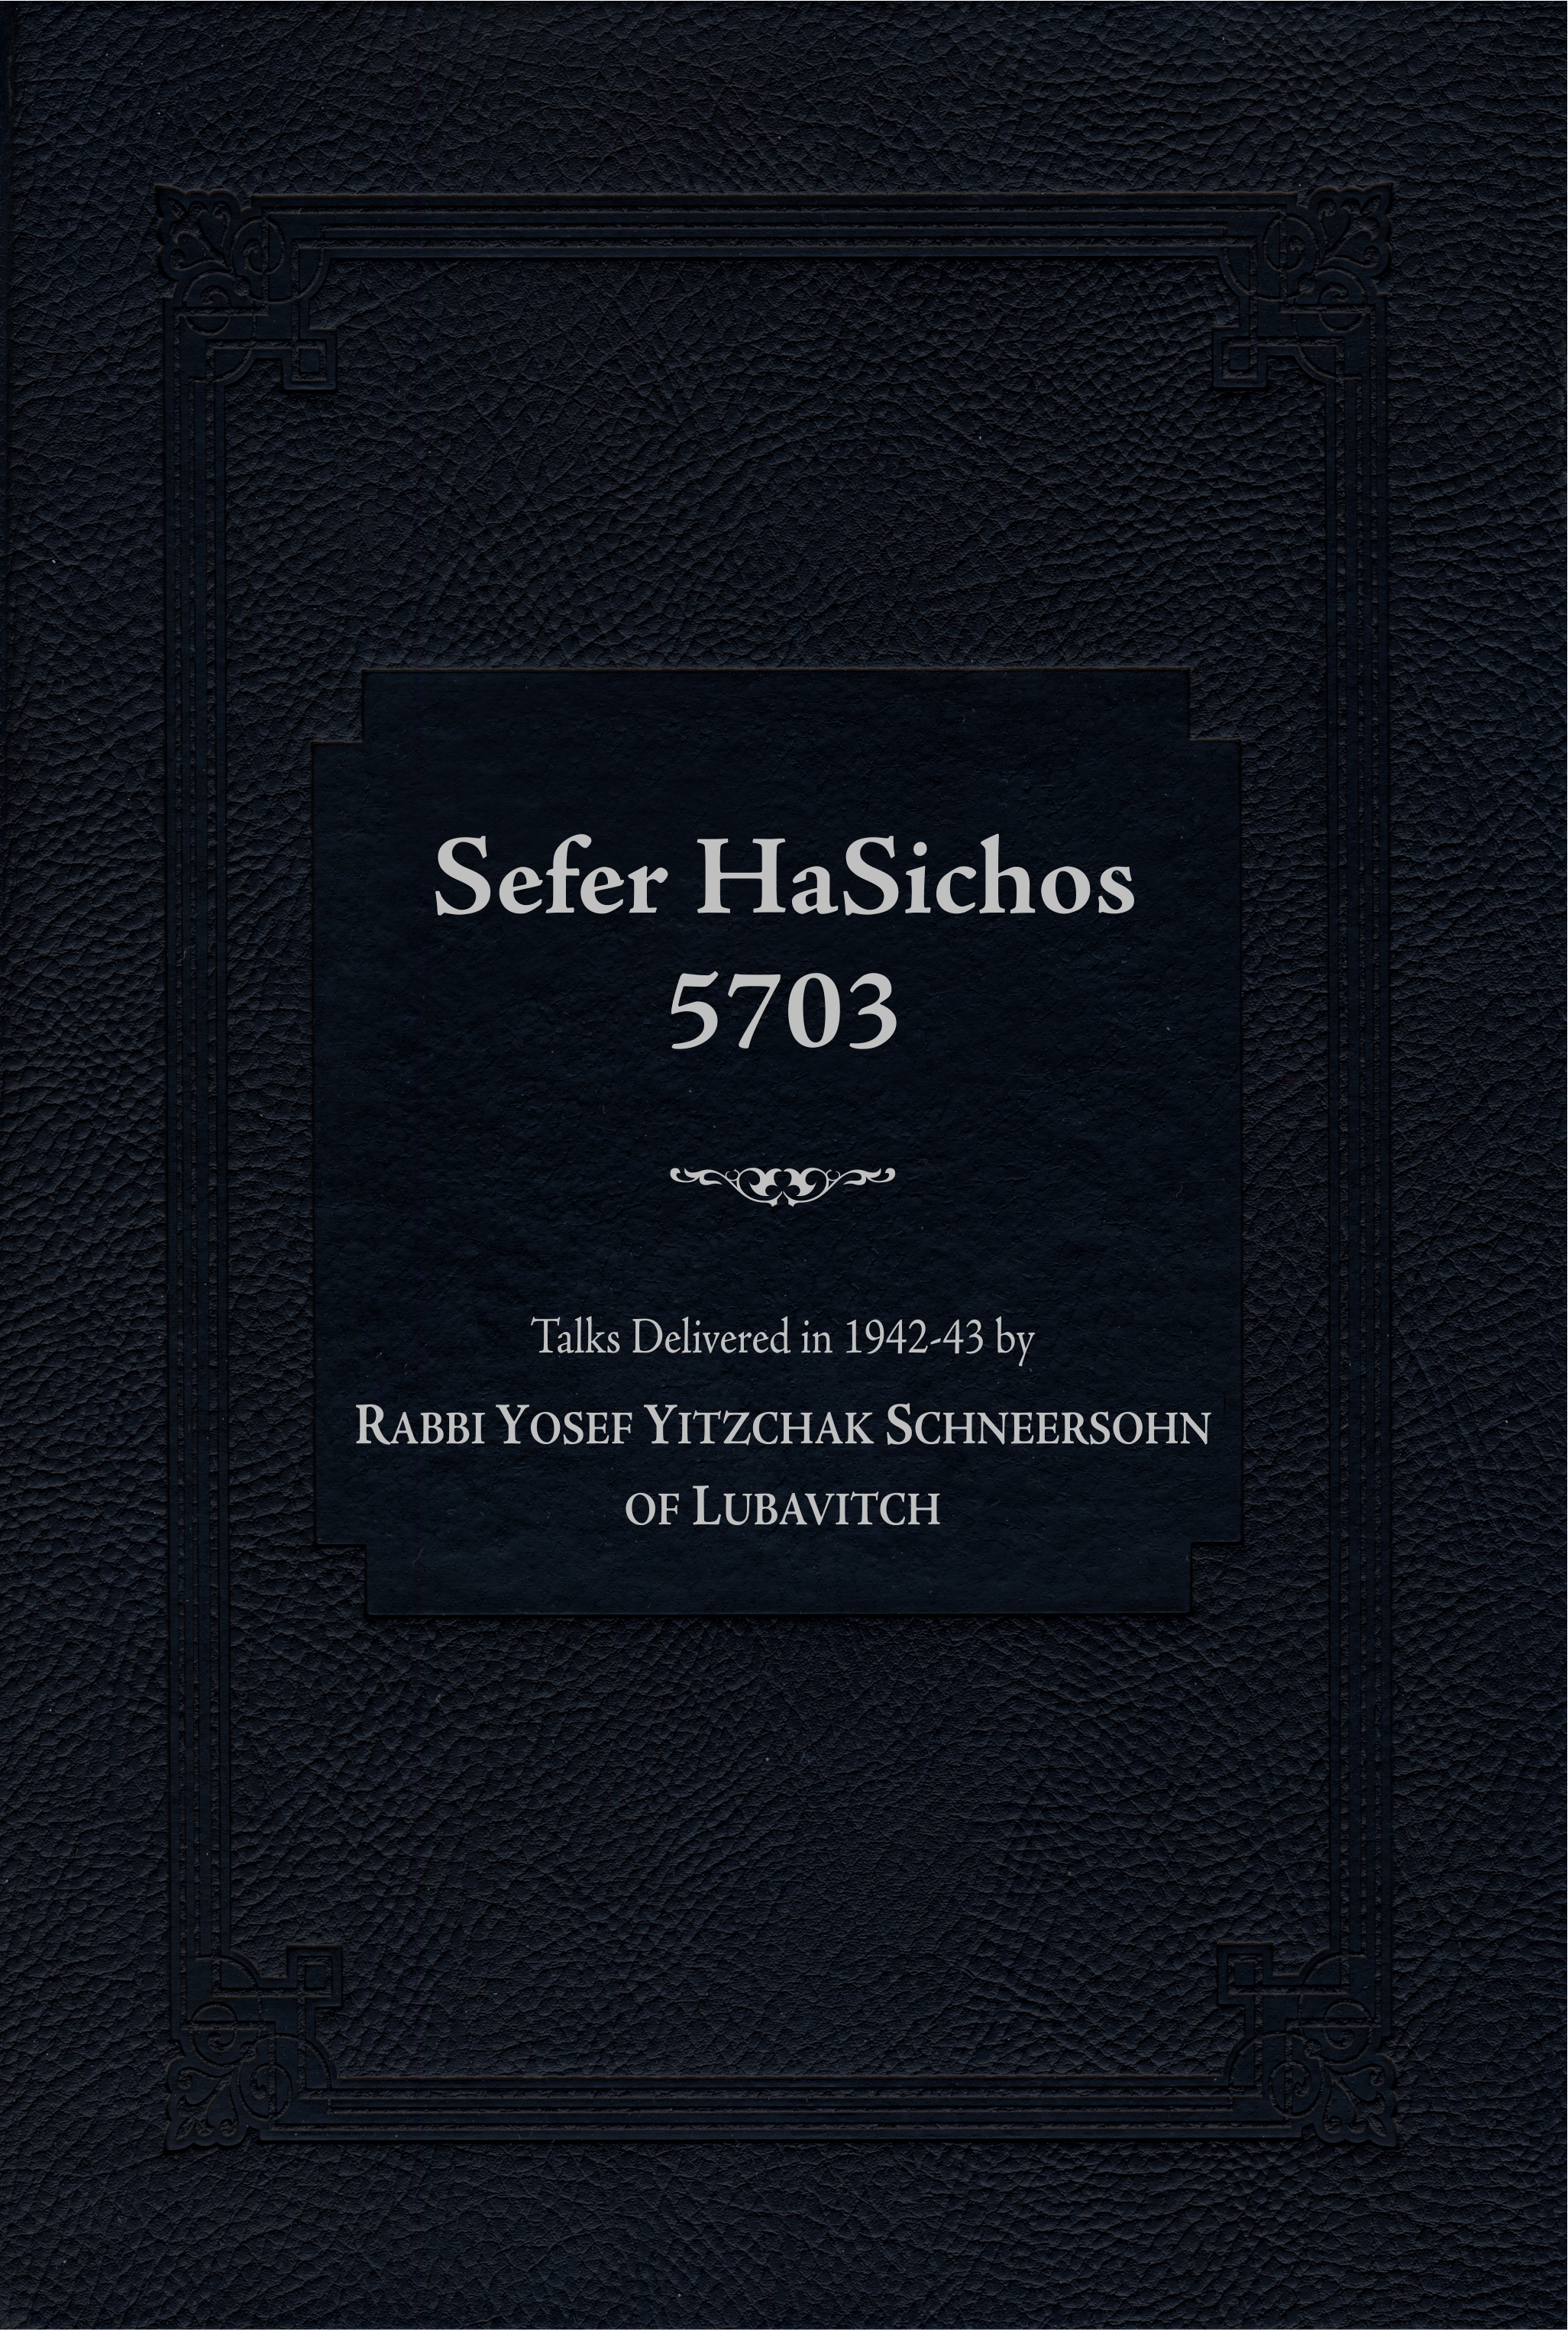 Cover and Sample page.jpg